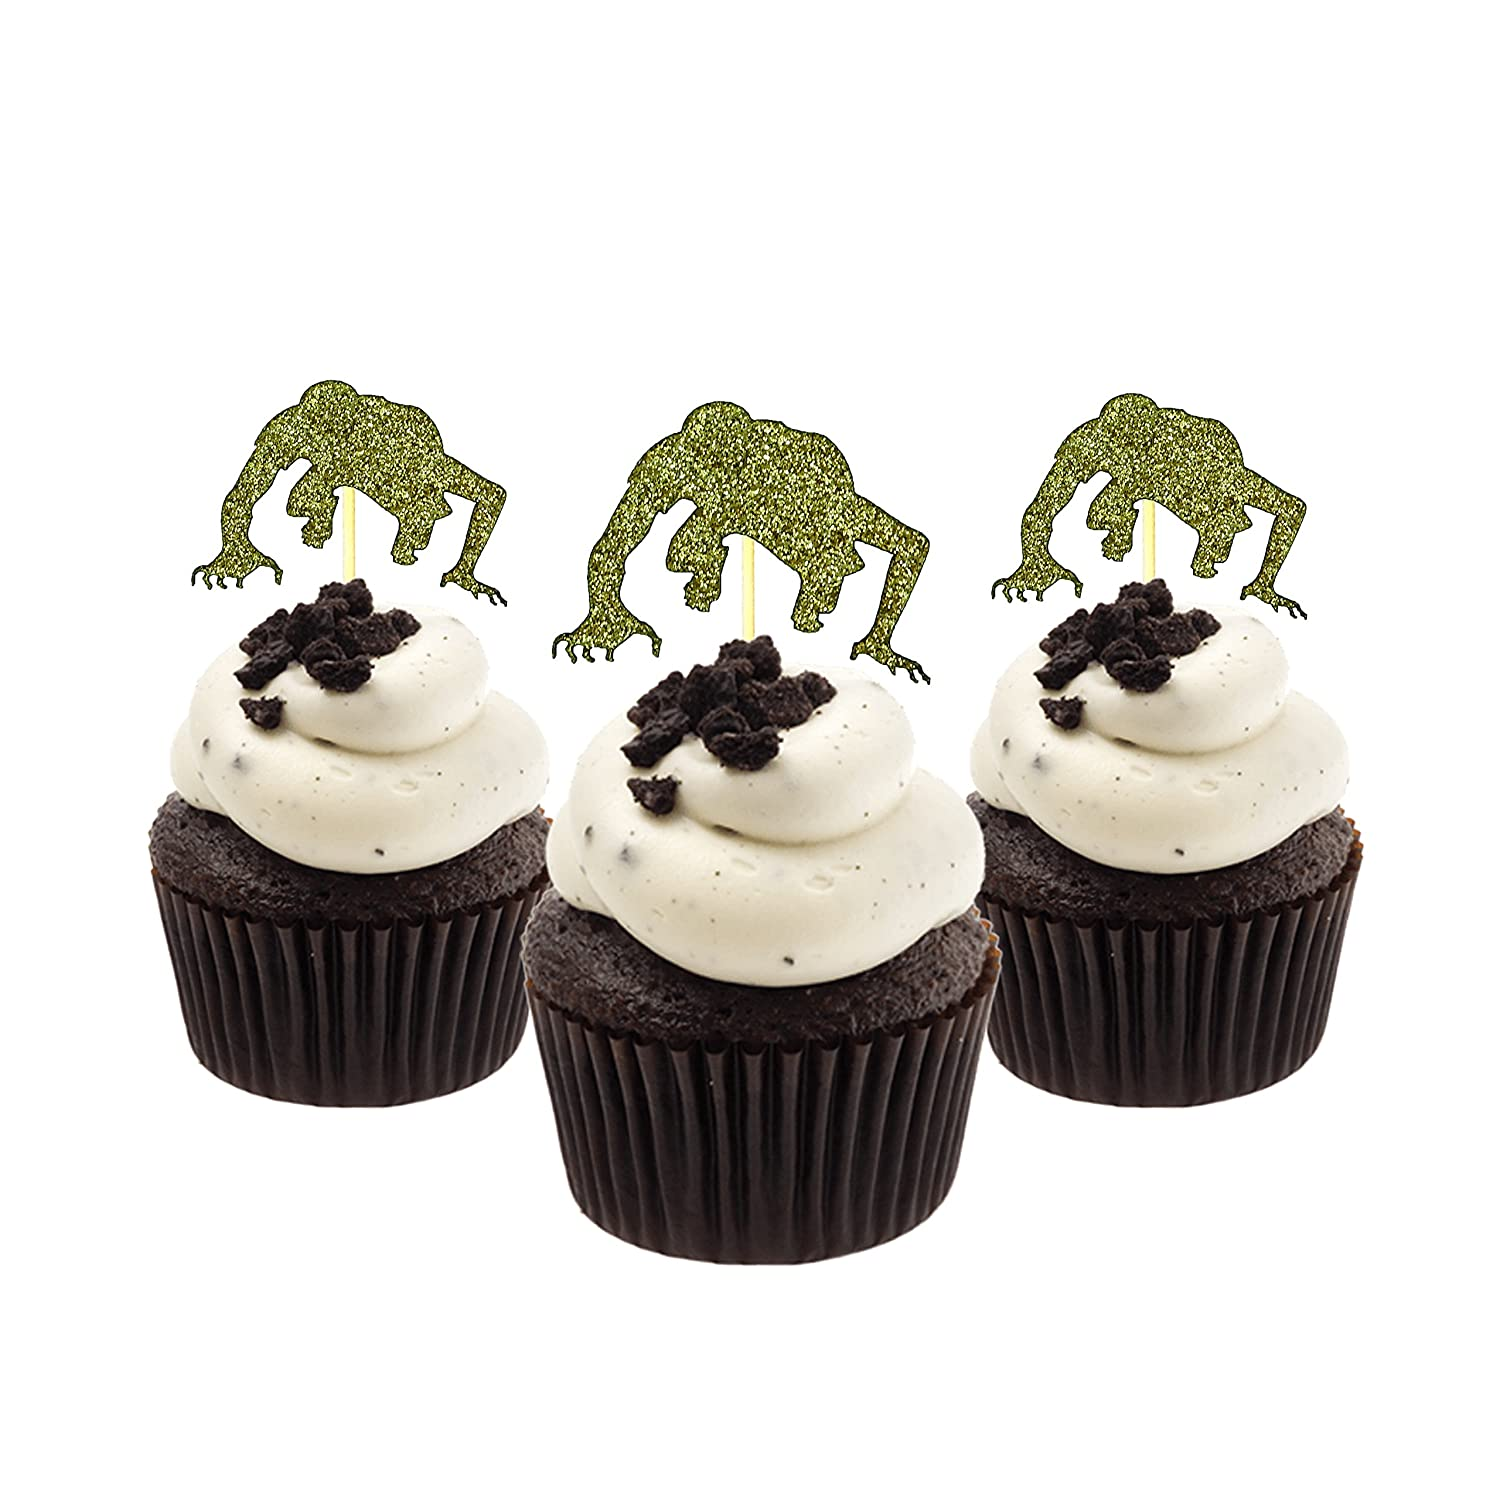 Zombie Halloween Cupcake Topper 12 pieces per Pack Decoration Cake glitter Card Stock Gold